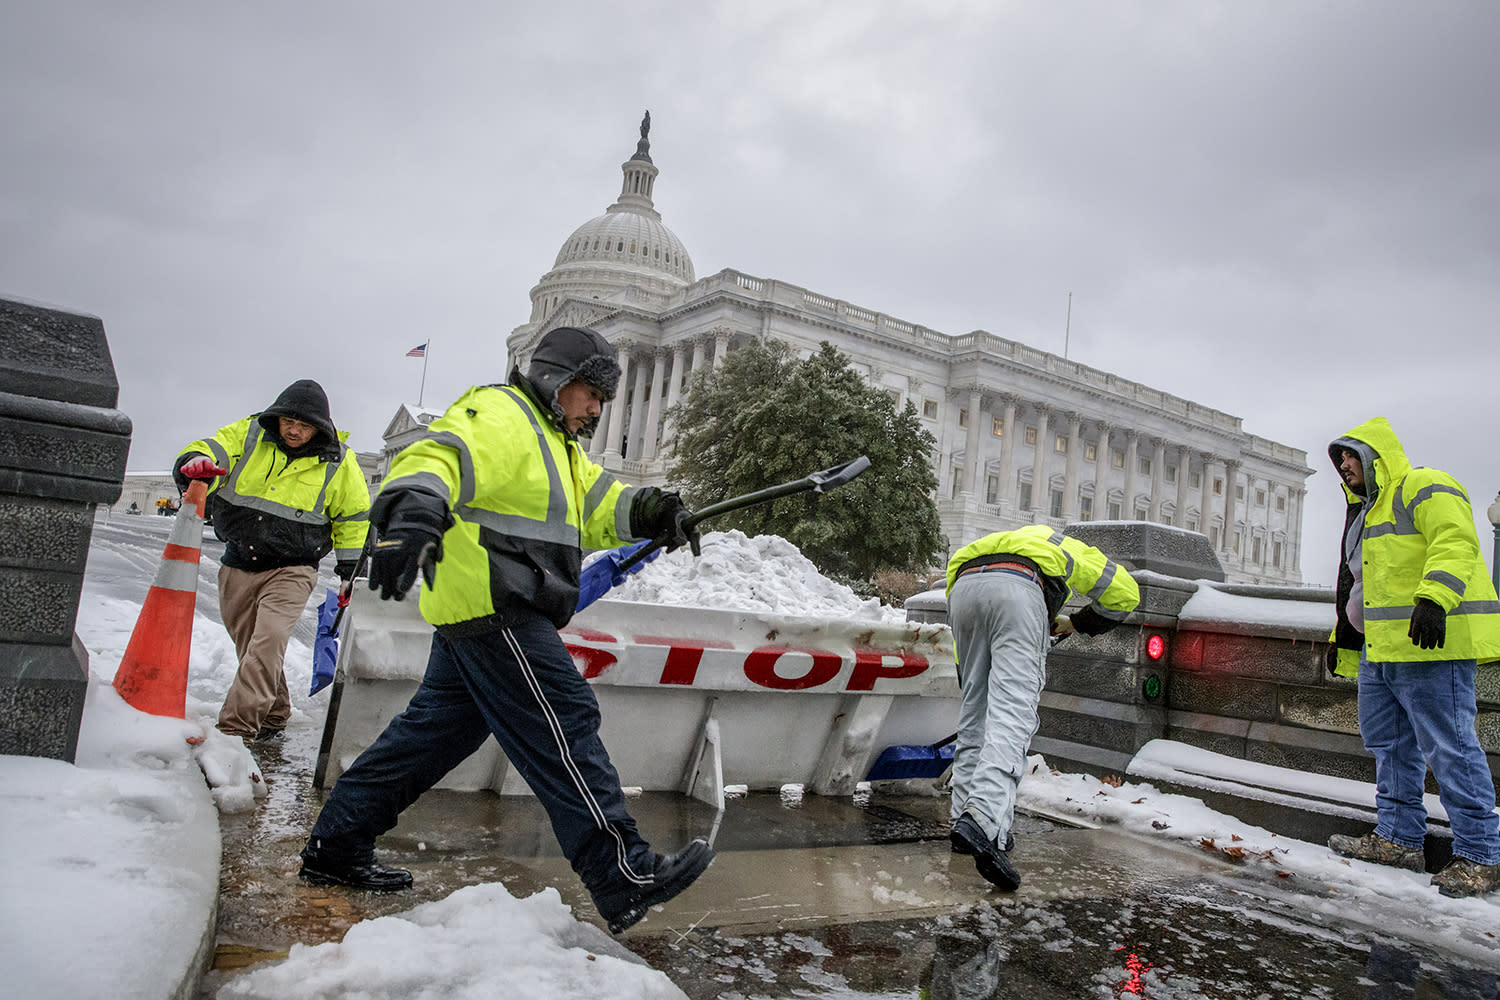 <p>Workmen clear snow from a security barricade on Capitol Hill in Washington, Tuesday, March, 14, 2017. A late-season storm is dumping a messy mix of snow, sleet and rain on the mid-Atlantic, complicating travel, knocking out power and closing schools and government offices around the region. (J. Scott Applewhite/AP) </p>